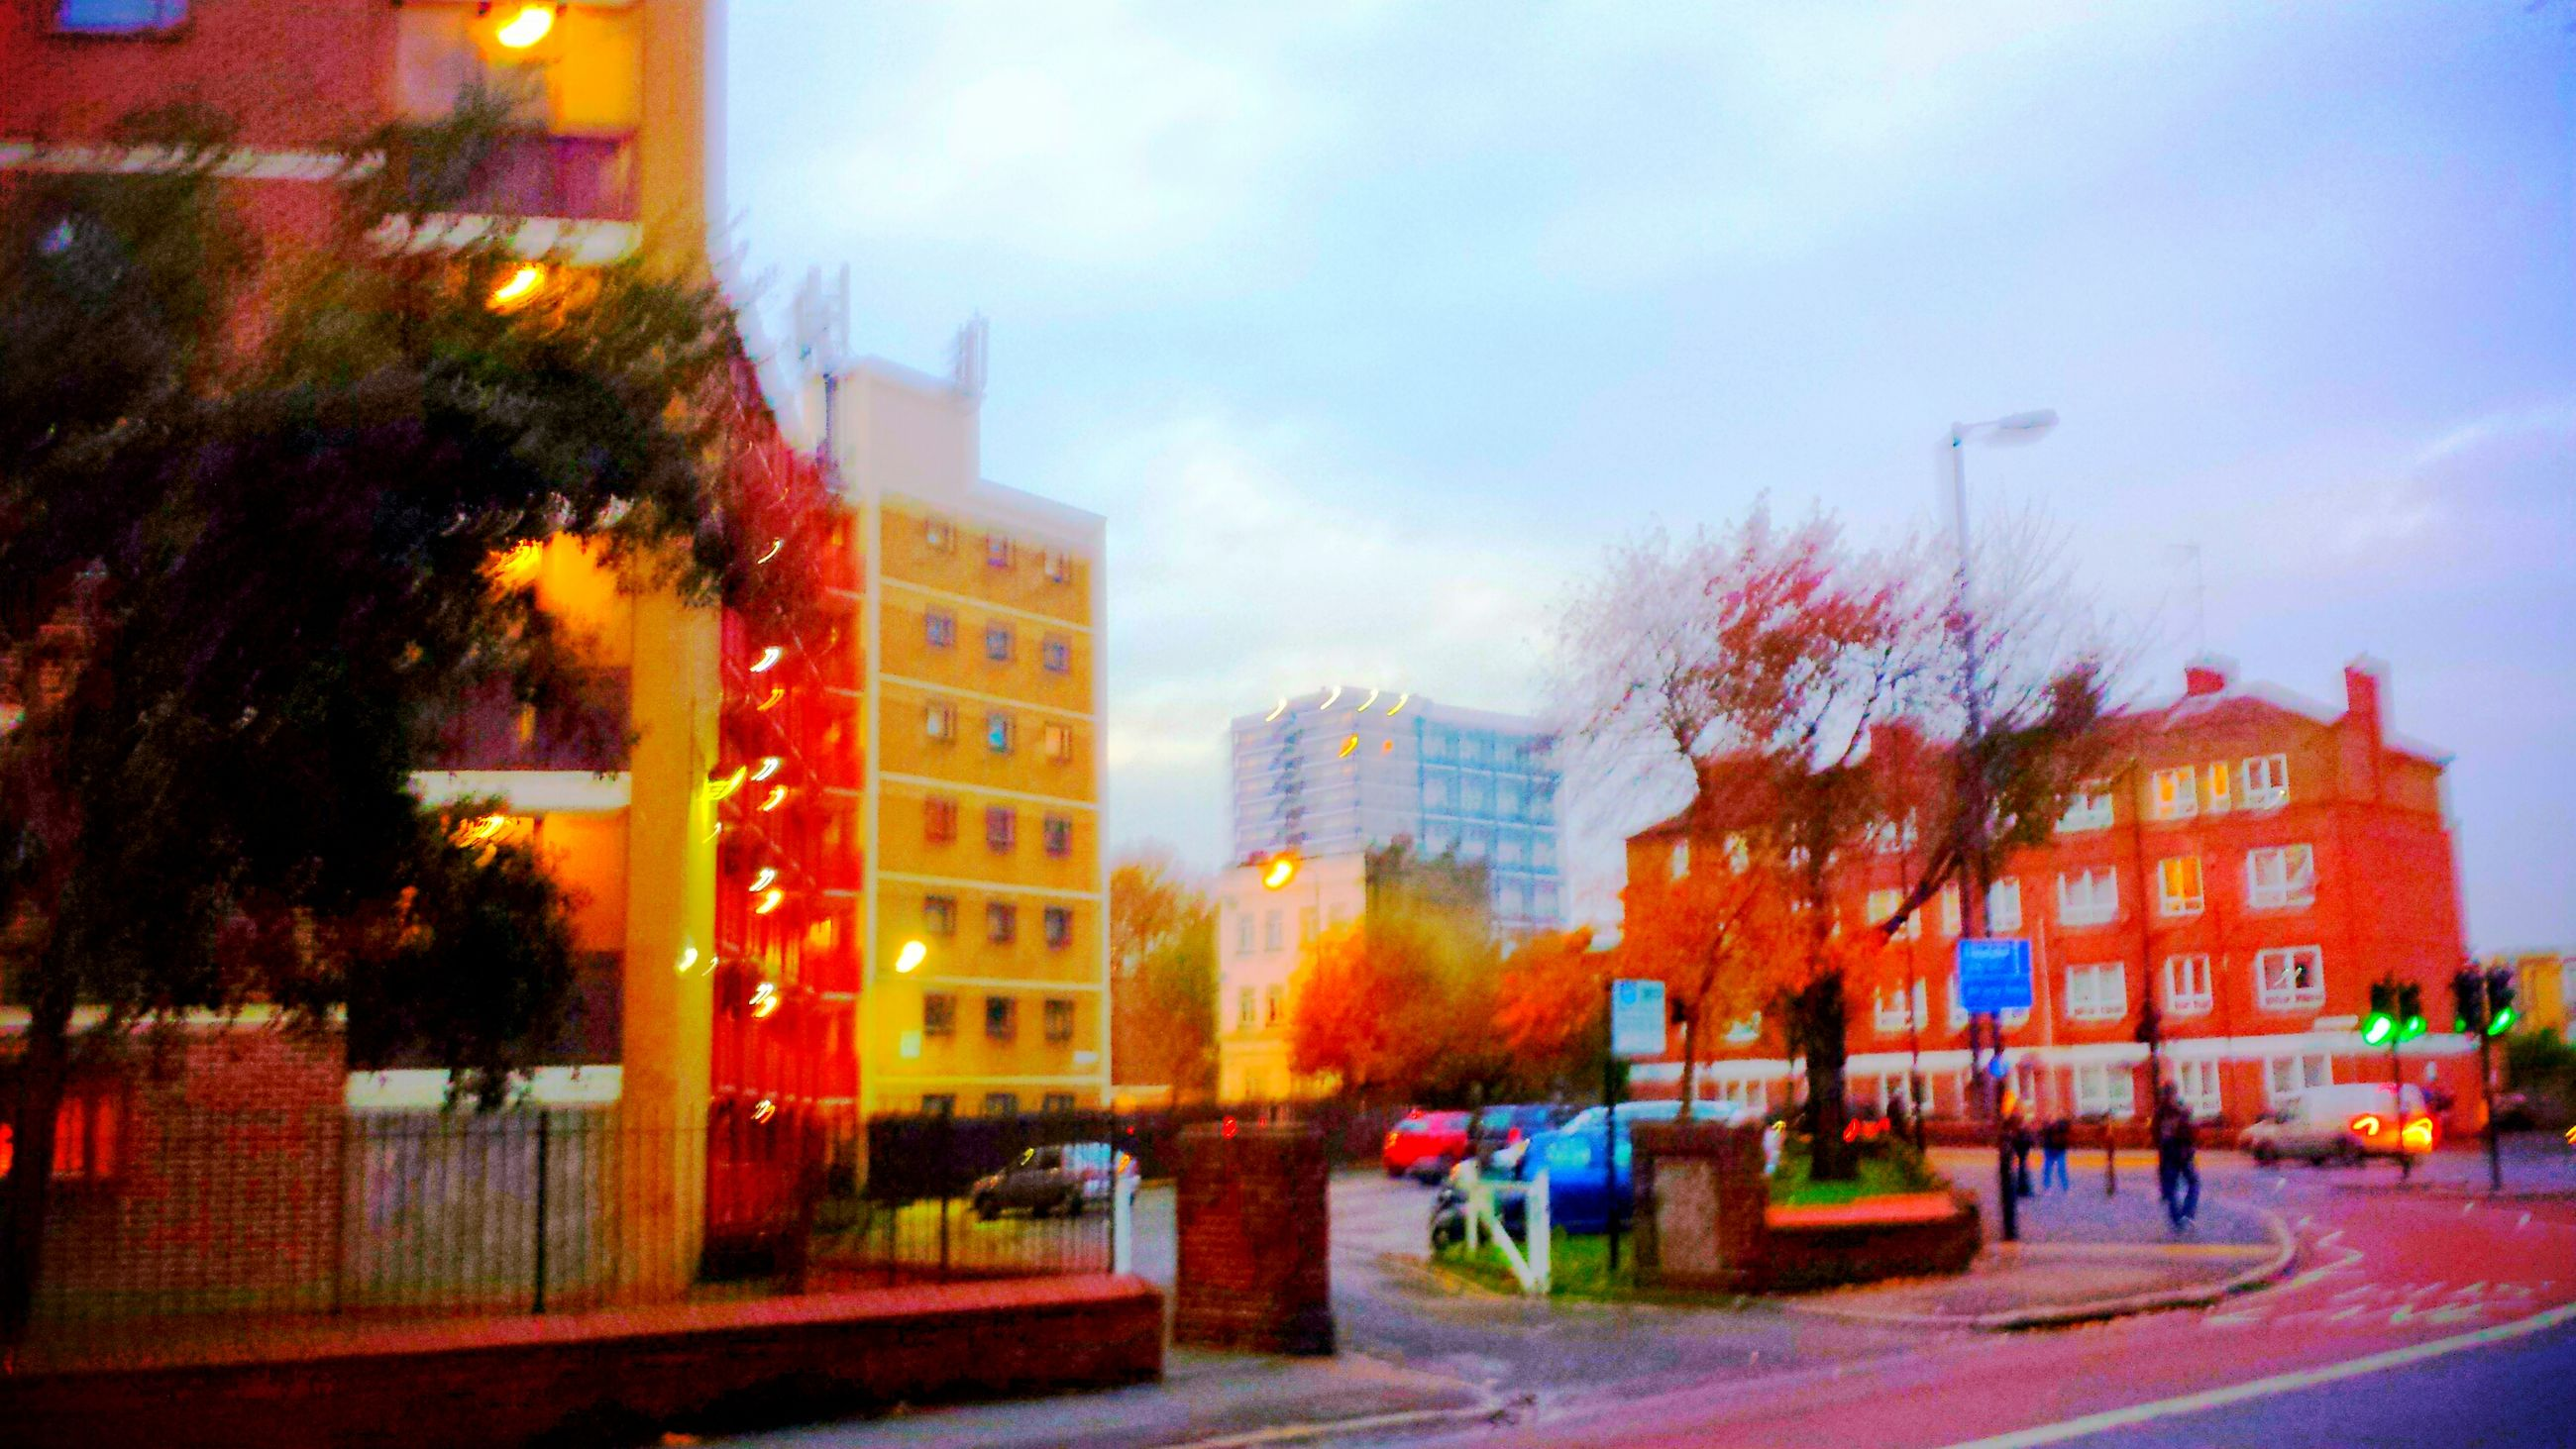 building exterior, architecture, built structure, city, illuminated, sky, street, road, dusk, building, cloud - sky, city life, multi colored, tree, city street, outdoors, residential building, street light, sunset, incidental people